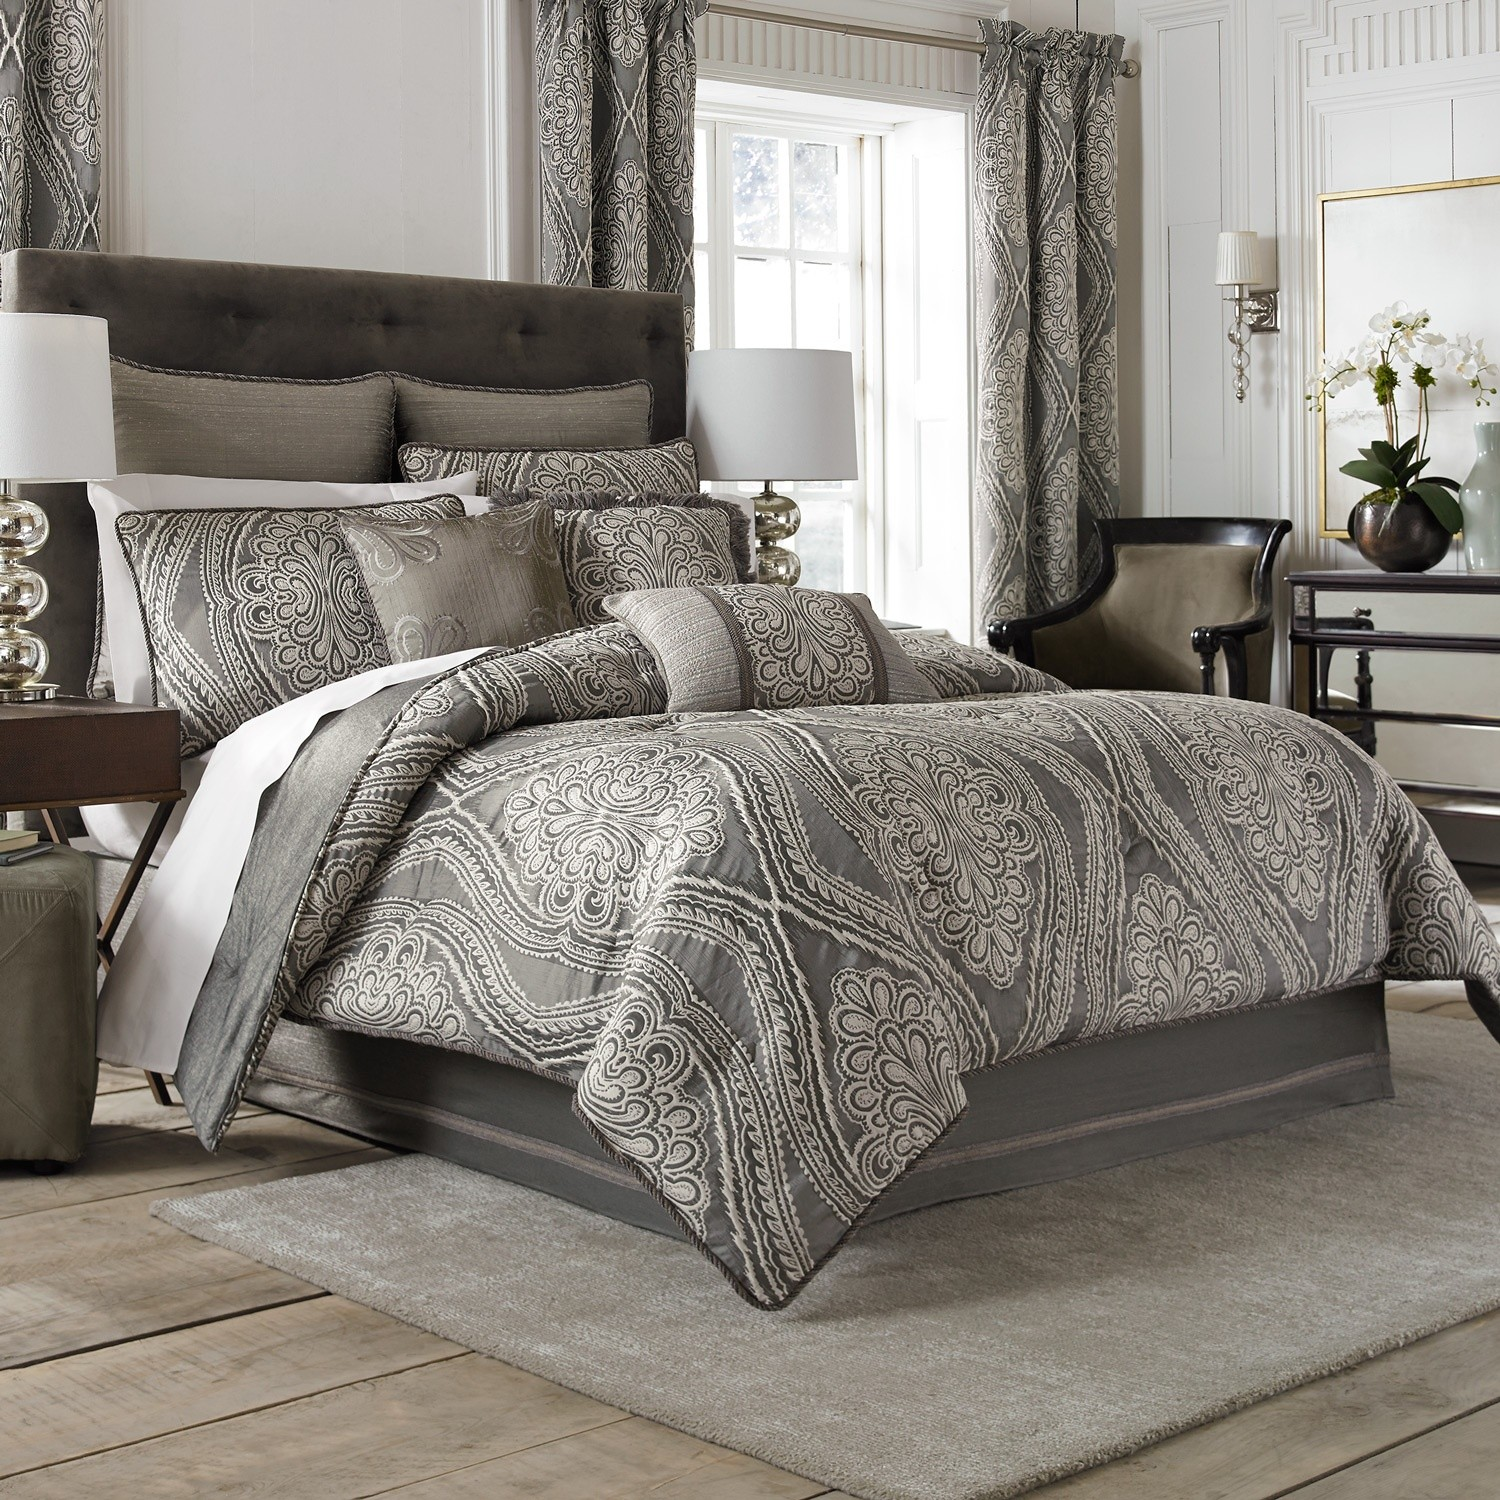 Image of: Contemporary Bedding Sets Design Ideas